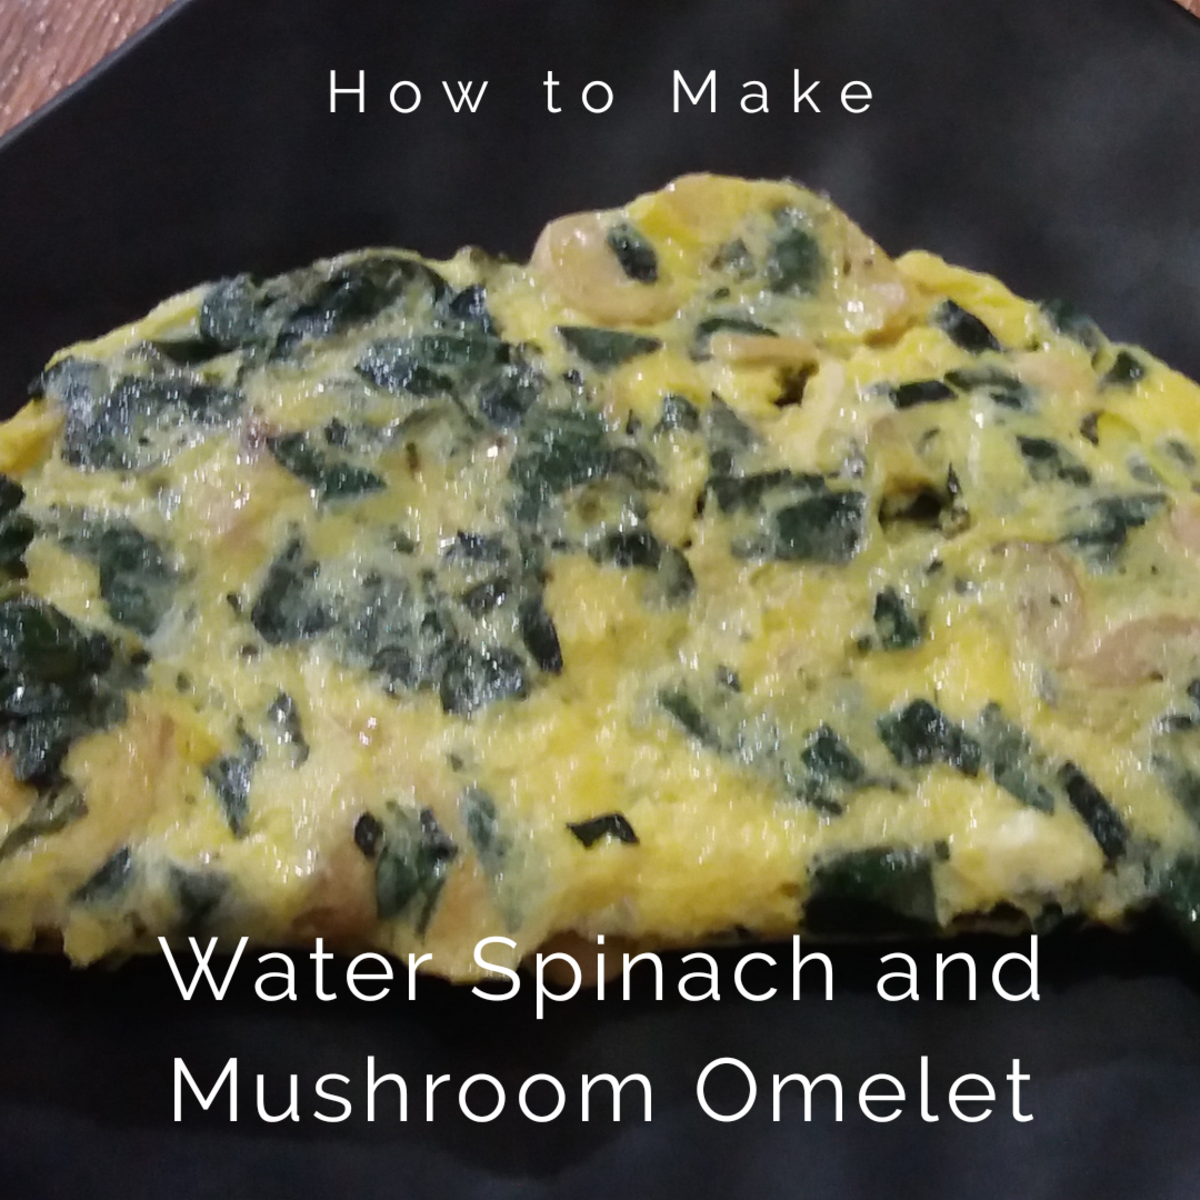 How to Make Water Spinach and Mushroom Omelet